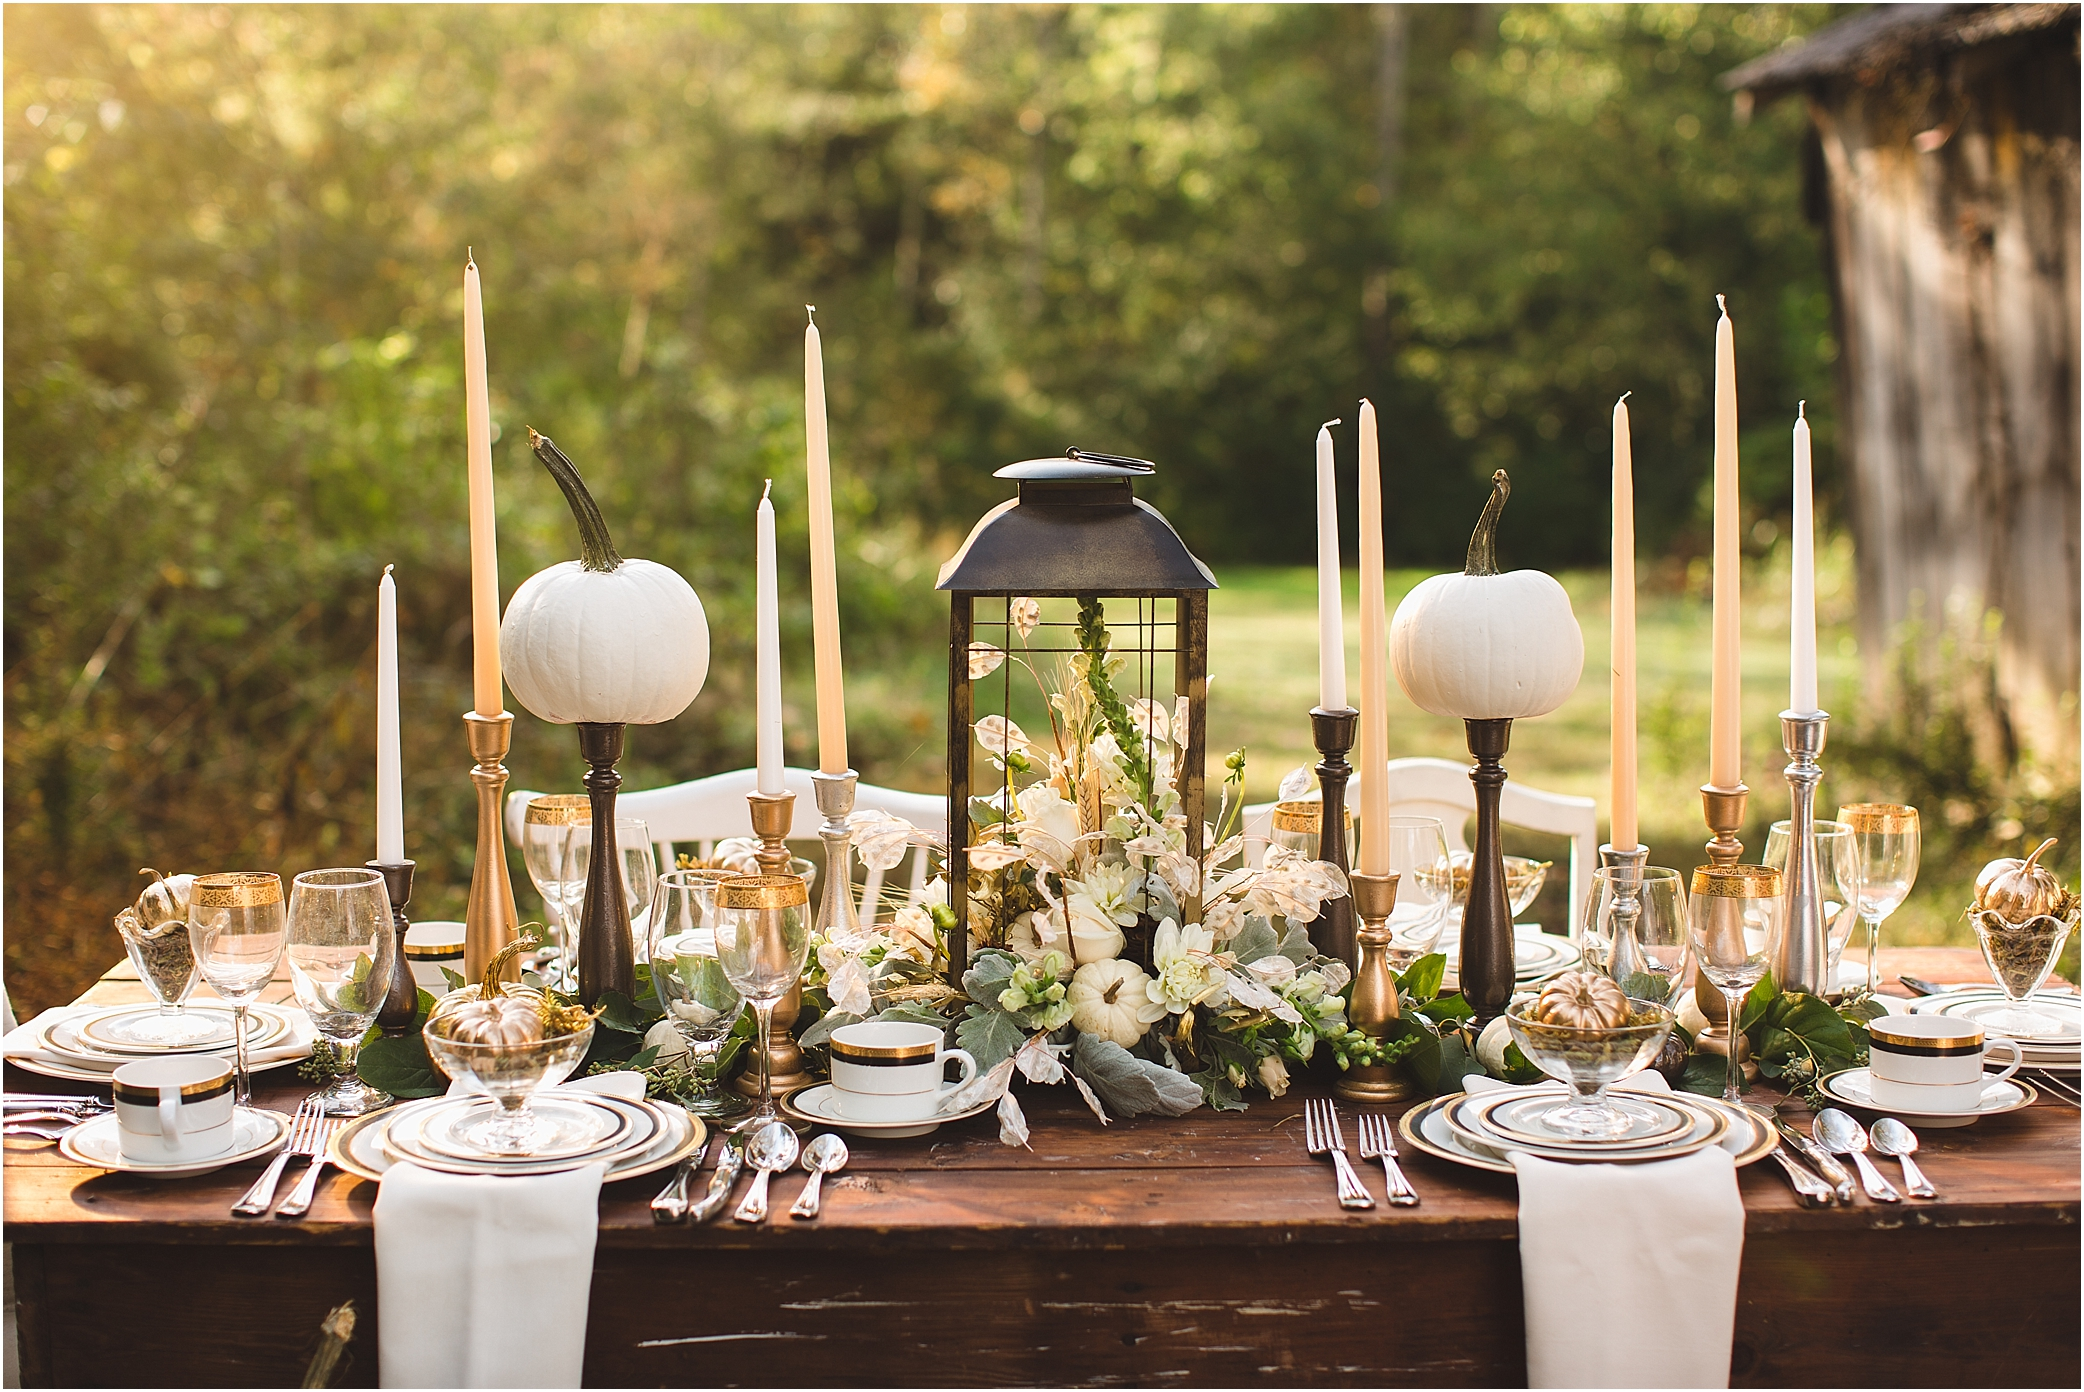 Thanksgiving table setting ideas and decorations for Elegant table setting for thanksgiving